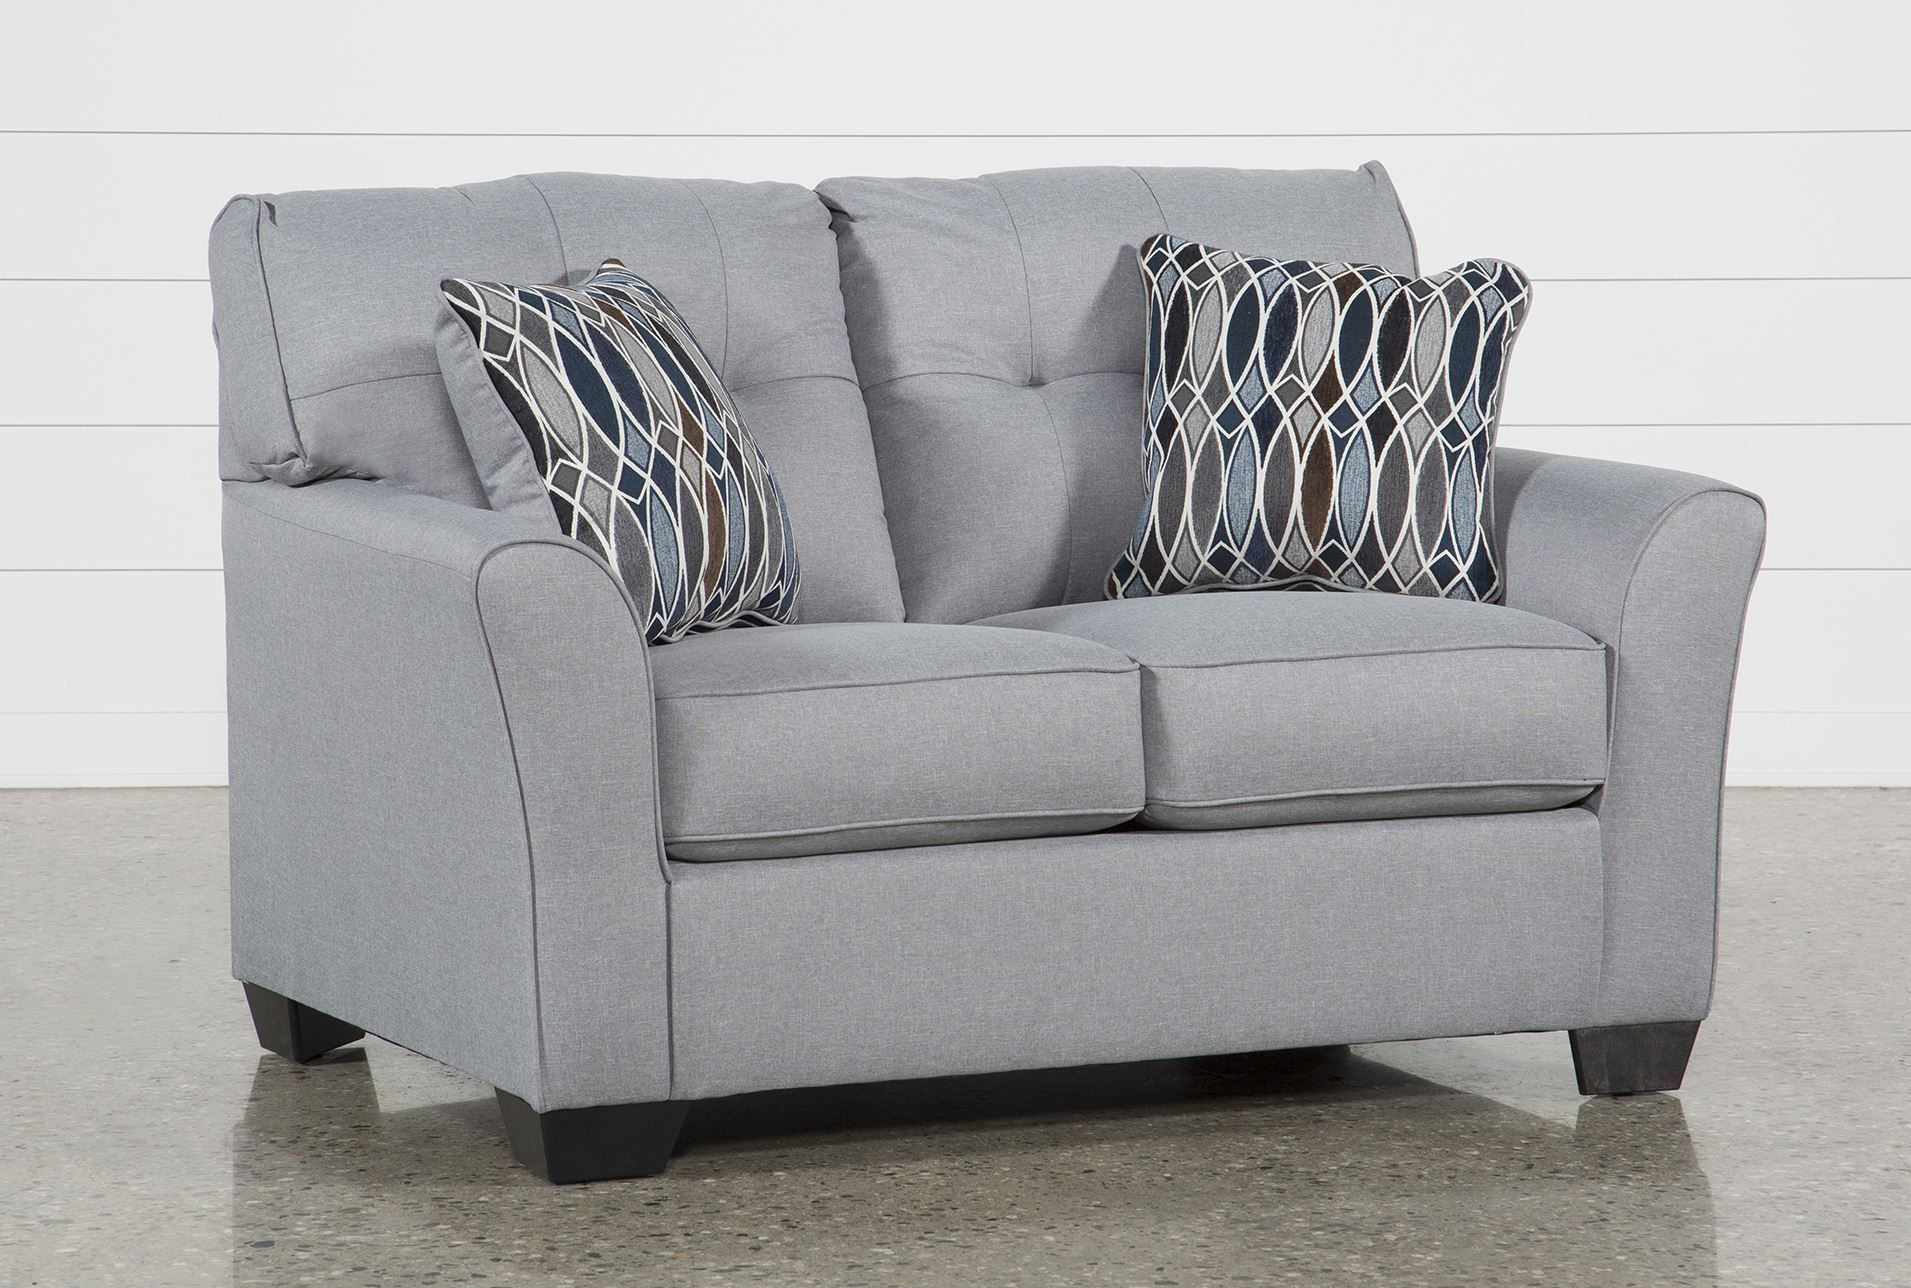 Ashley Chilkoot Smoke Loveseat, Grey, Sofas | Pinterest | Products With Mcdade Ash Sofa Chairs (View 11 of 25)